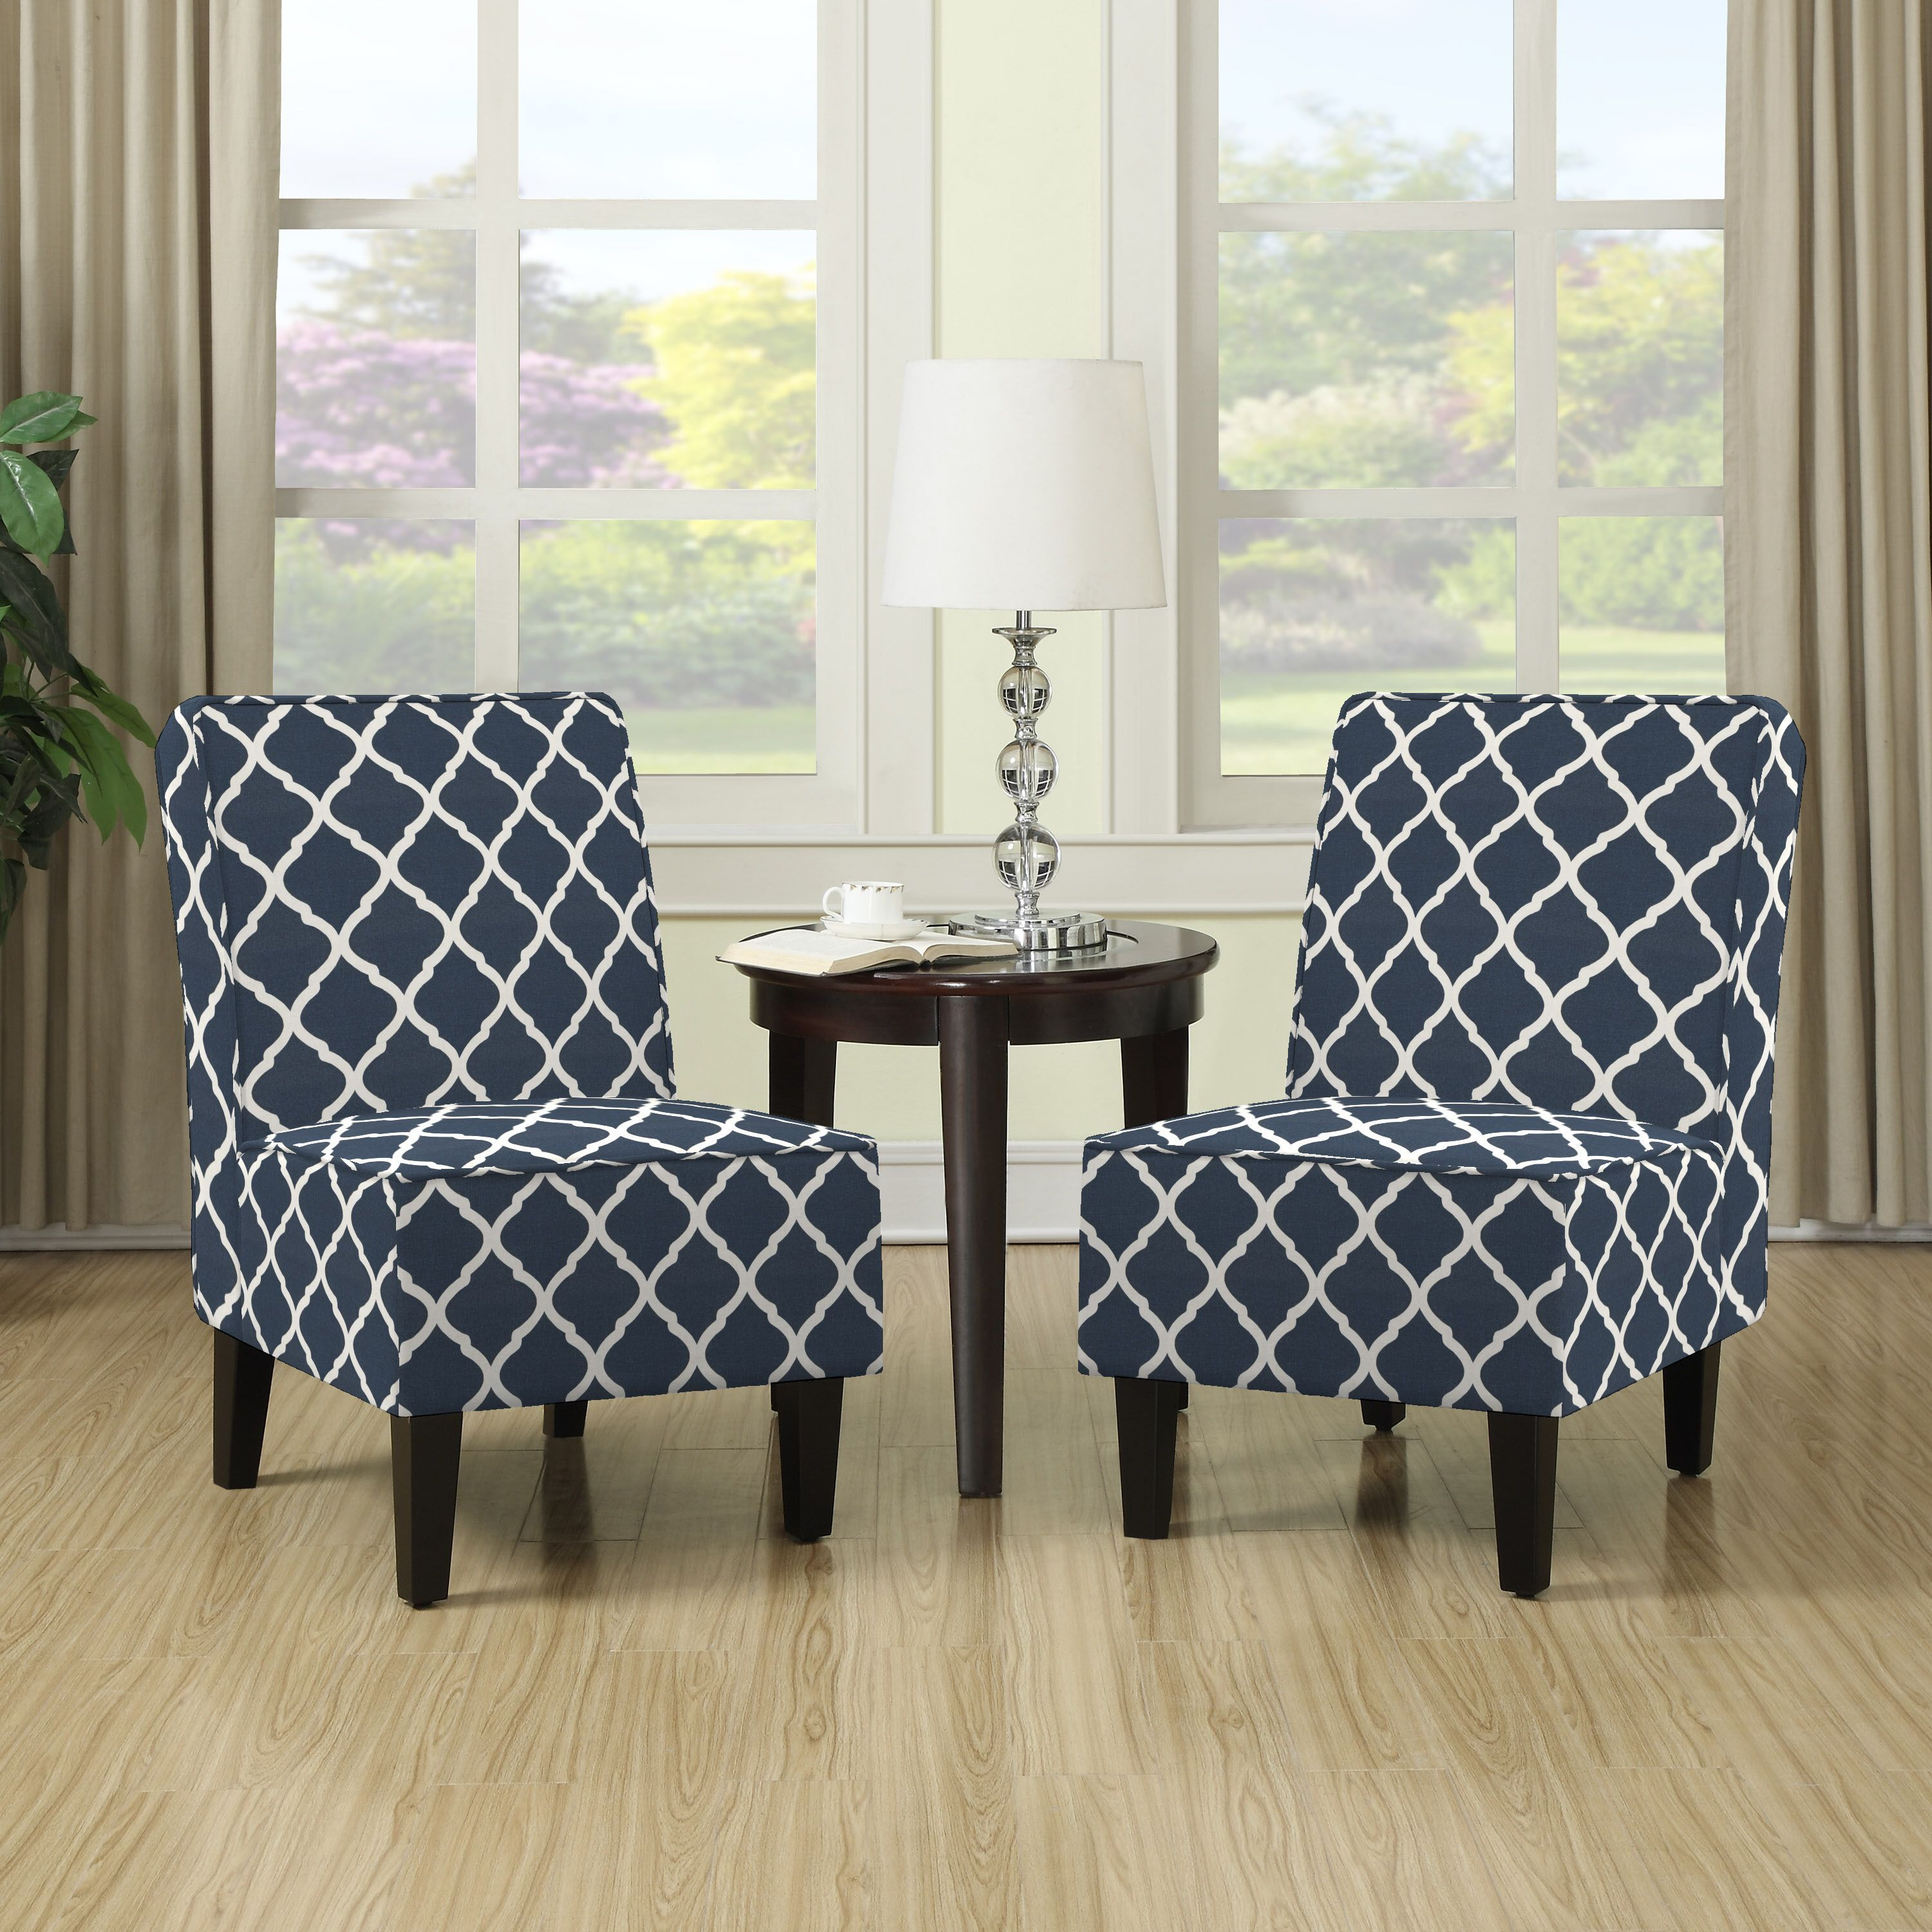 The Portfolio Home Furnishings Wylie Set Of 2 Armless Chairs Features  Upholstery In A Navy Blue